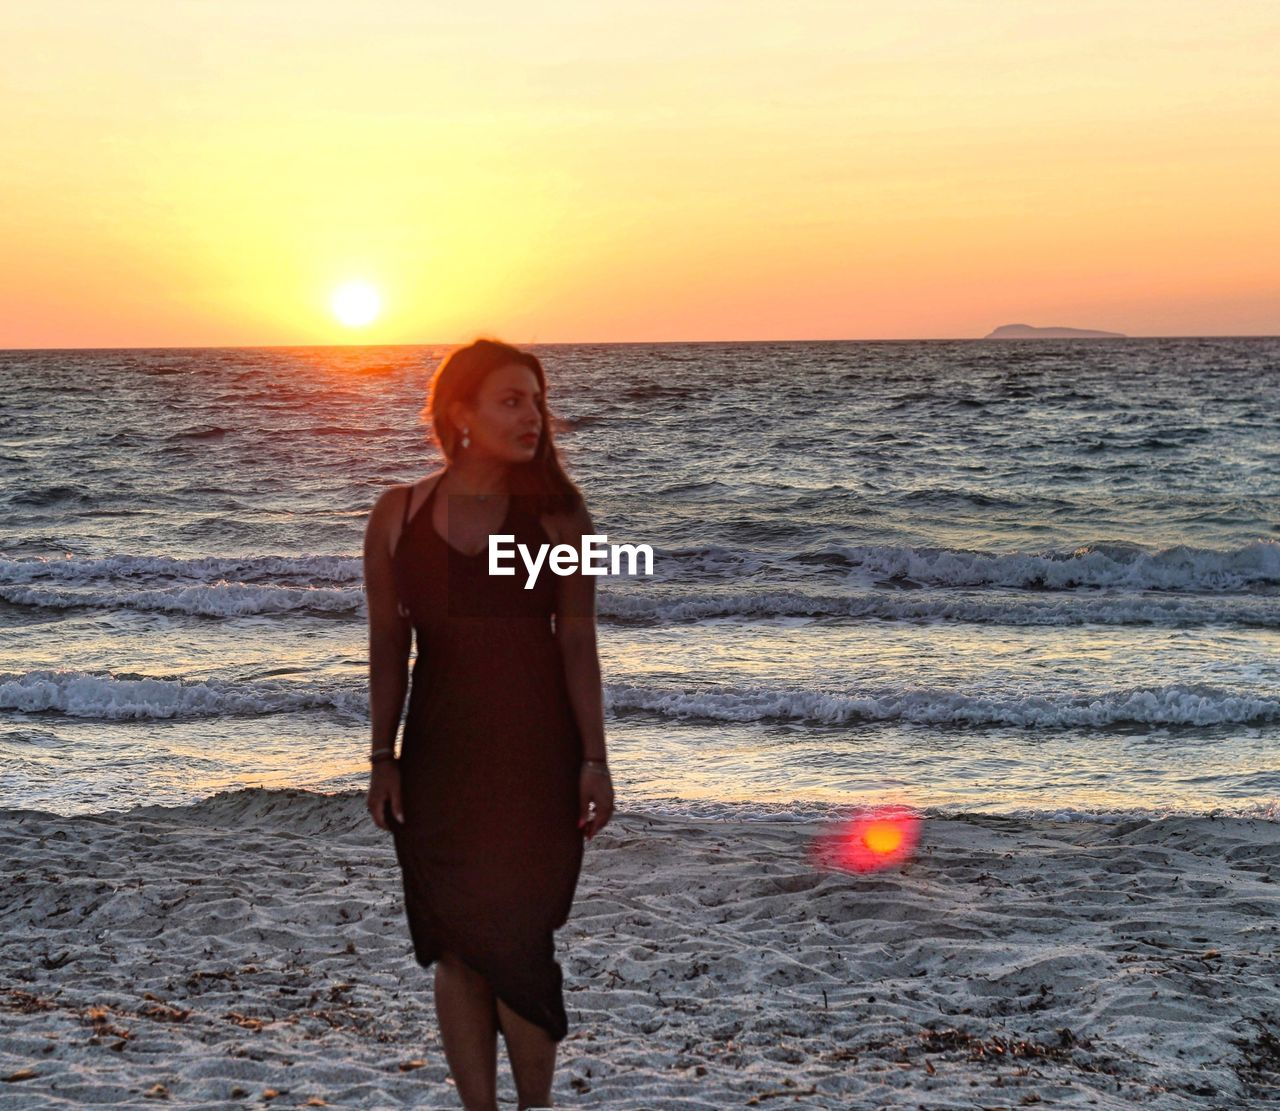 Woman looking away while standing at beach against sky during sunset